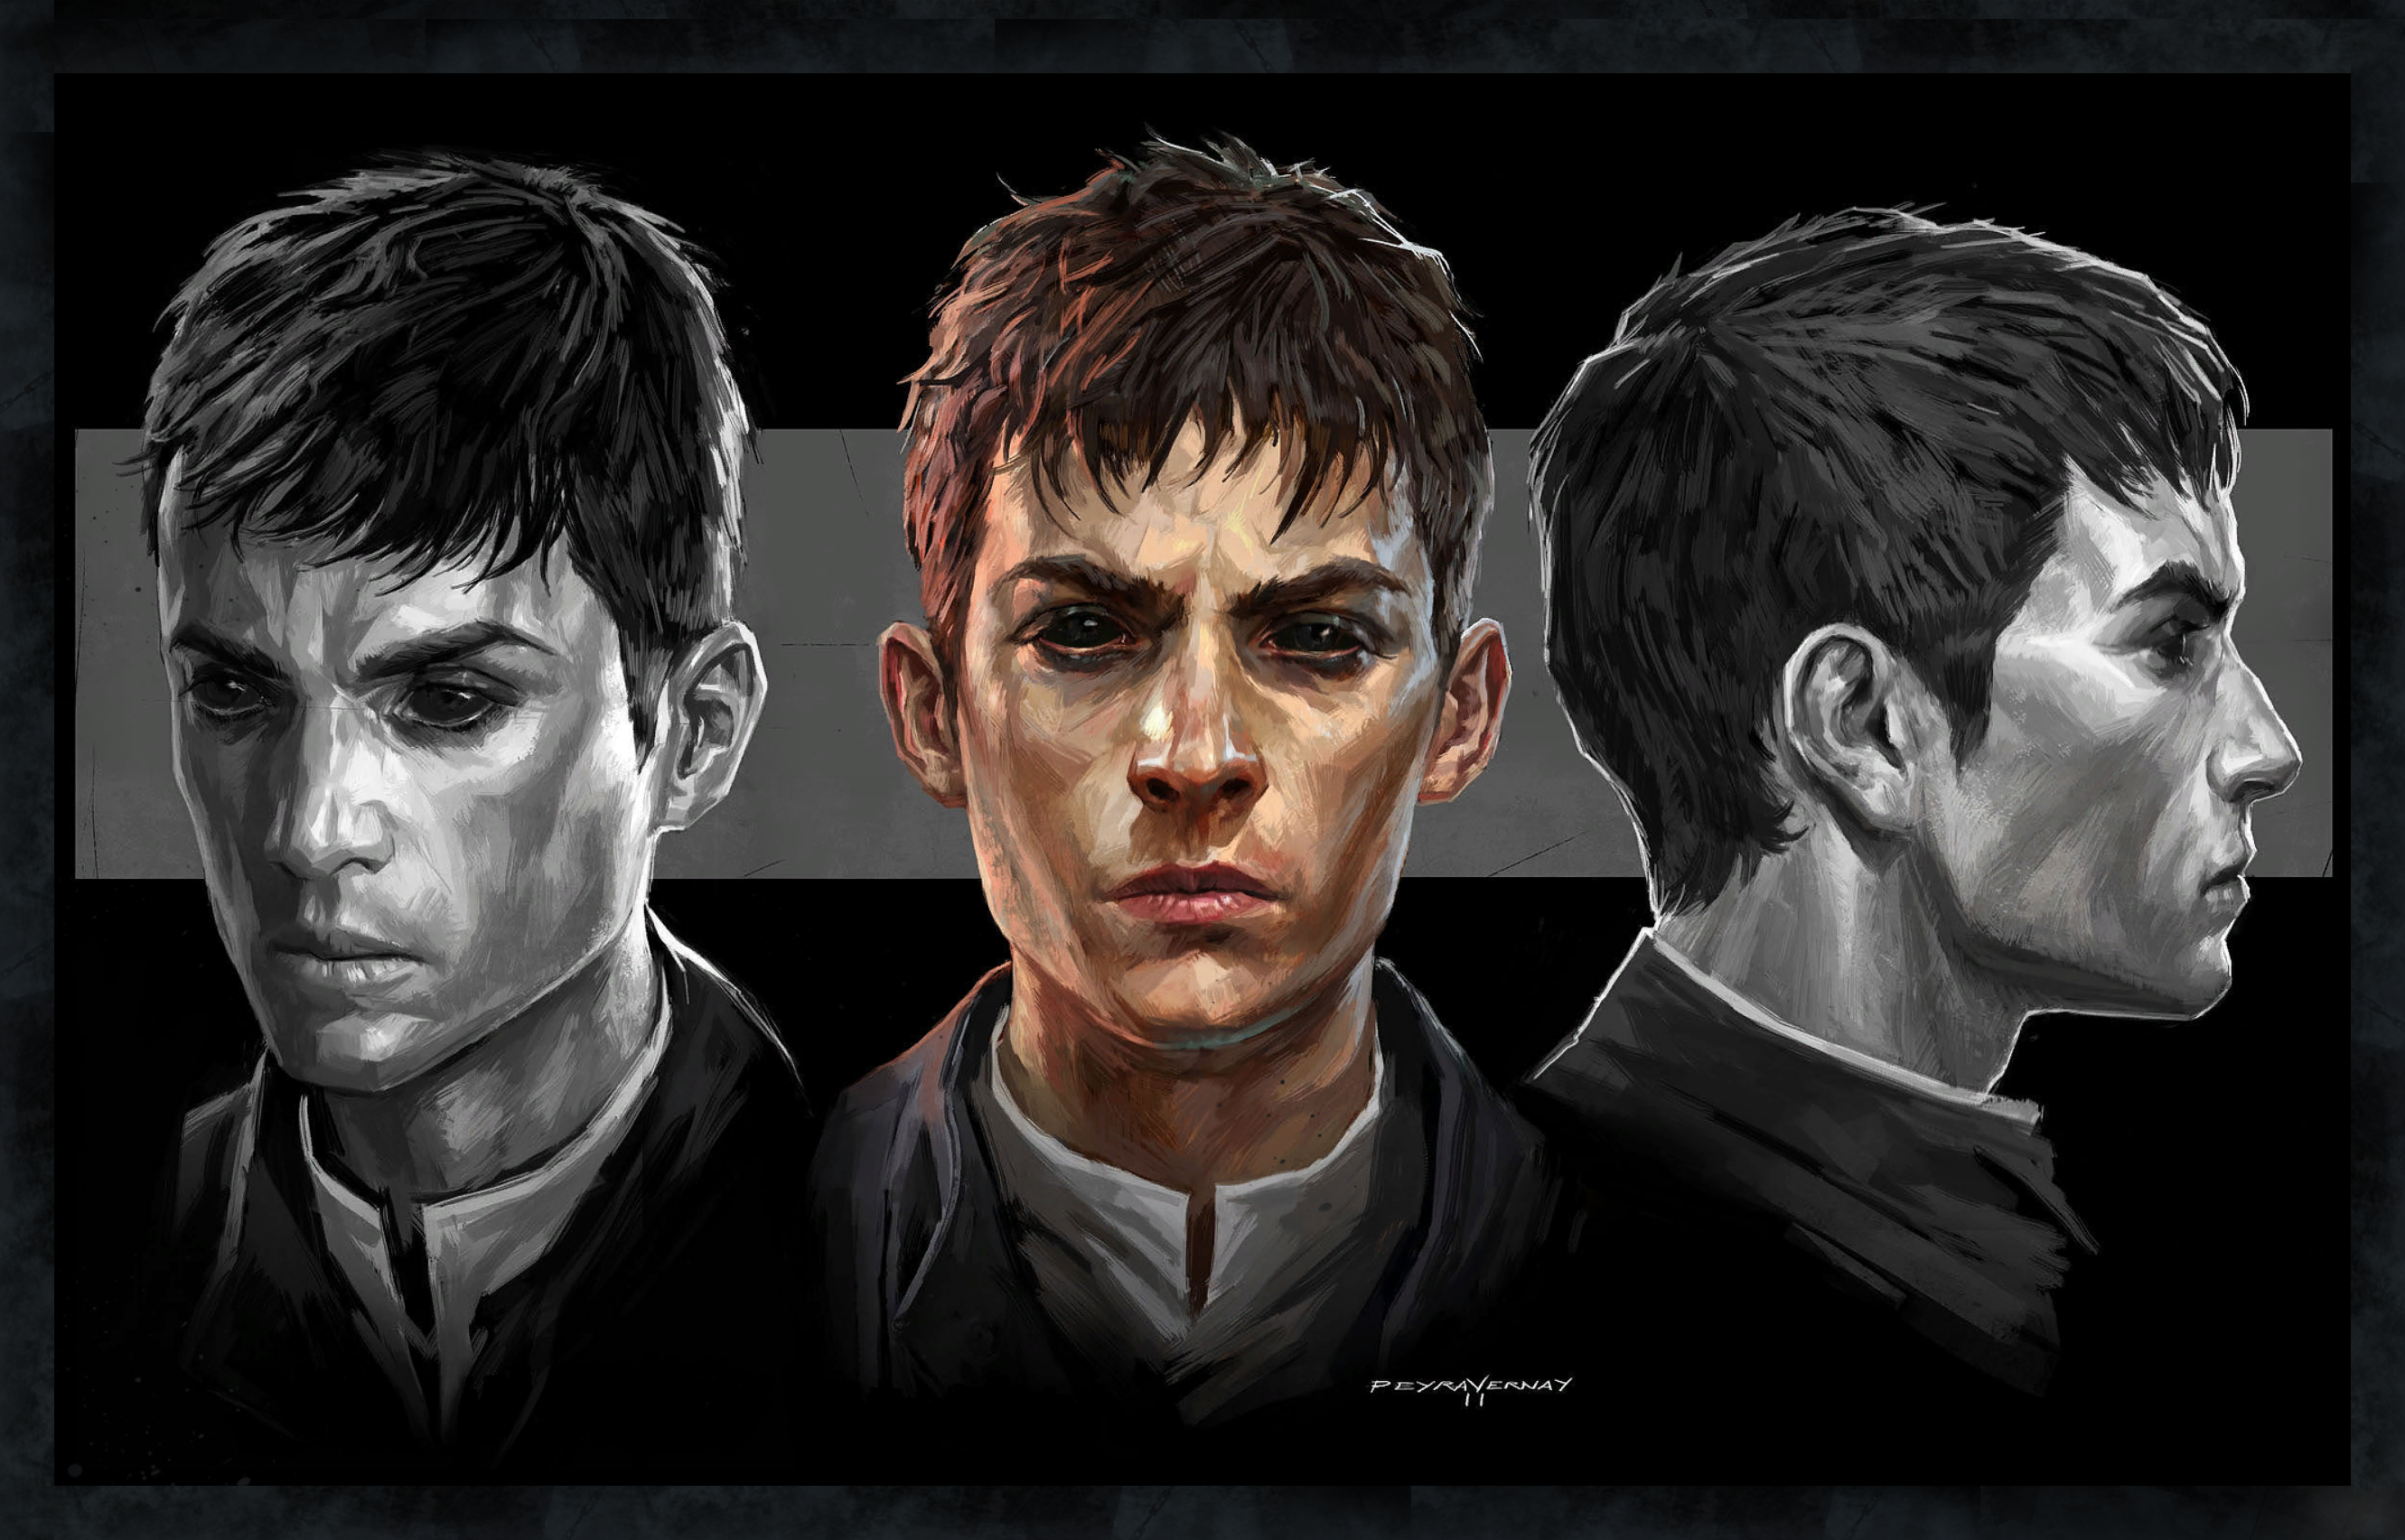 The Outsider - By bsdump : dishonored |The Outsider Dishonored